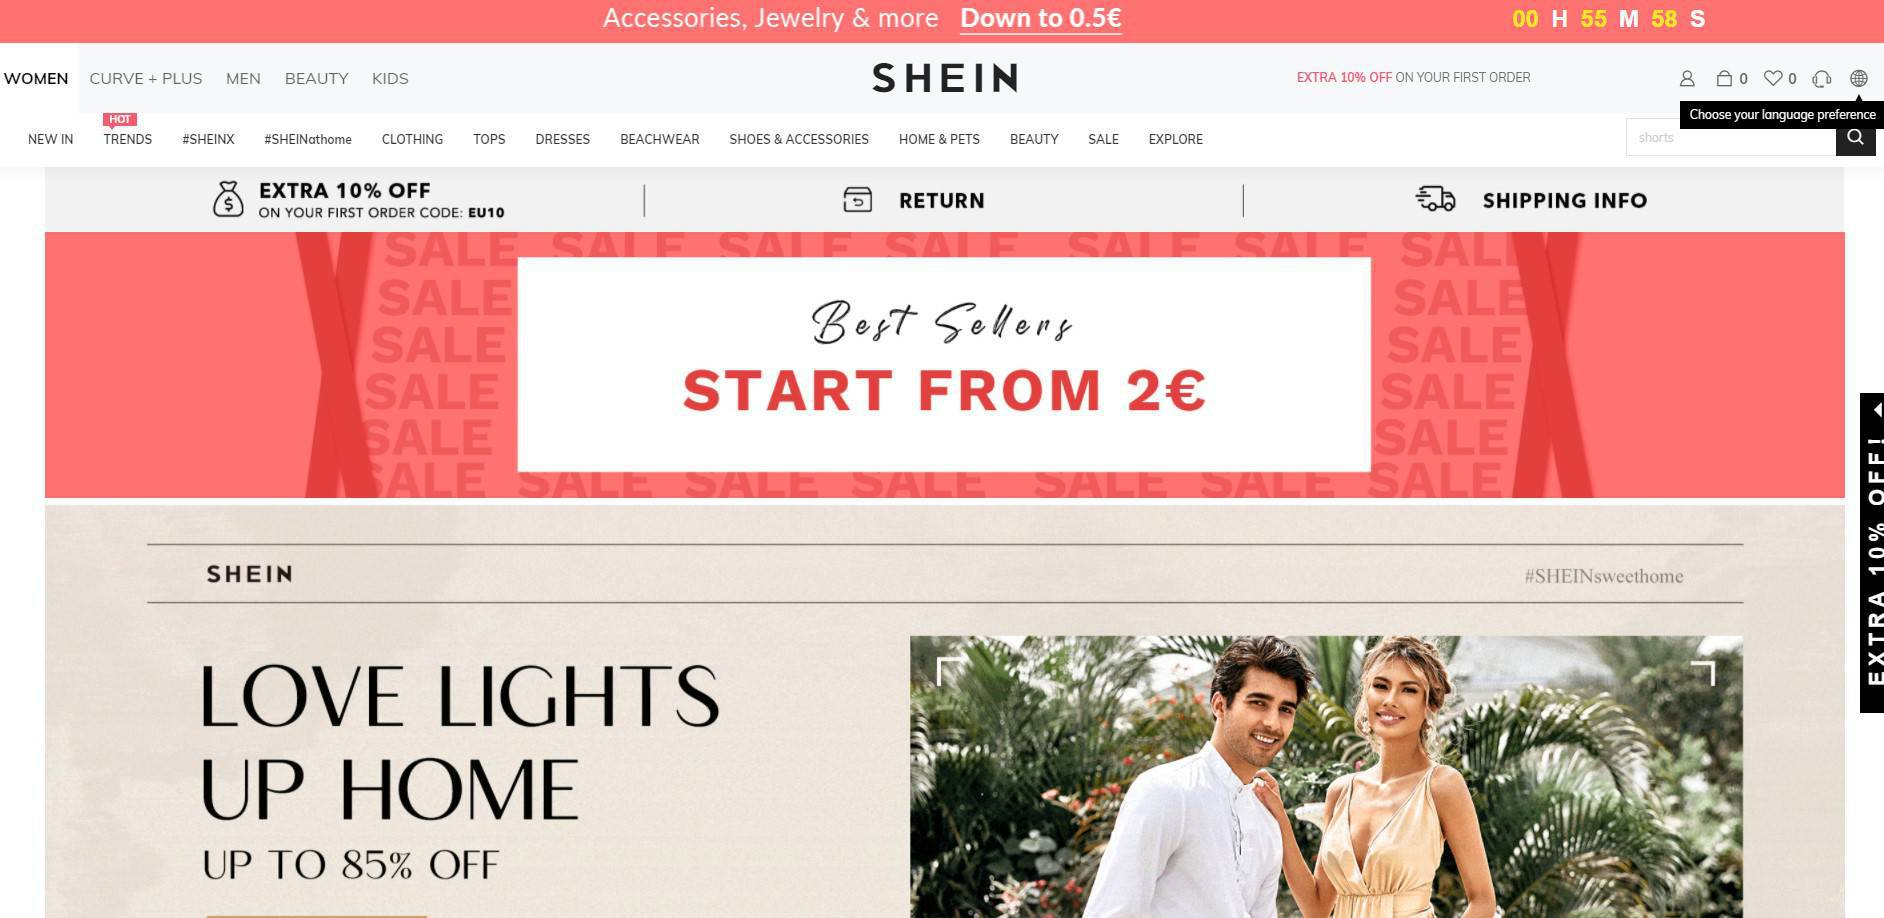 A web interface of the online e-commerce platform Shein with product menus, discounts, and new offers